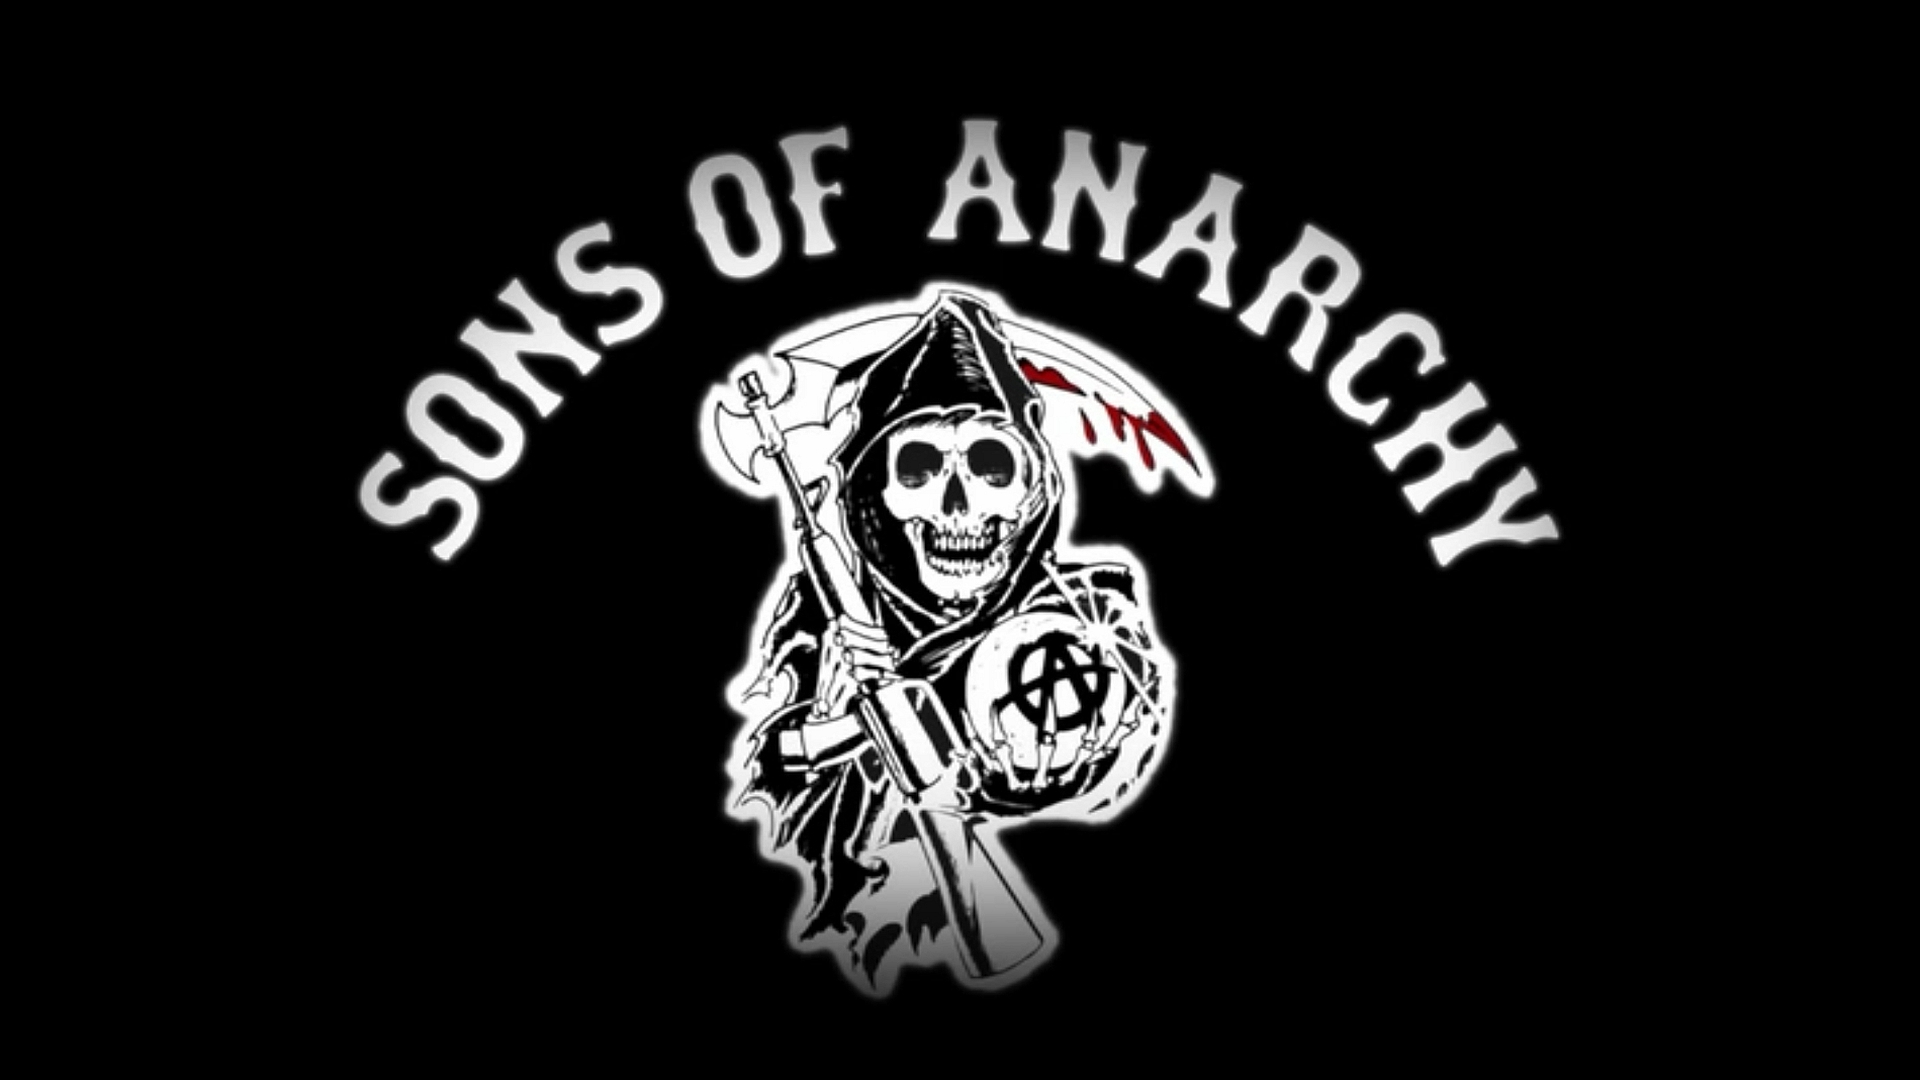 New 500 screensaver Anarchy screensaver 1920x1080